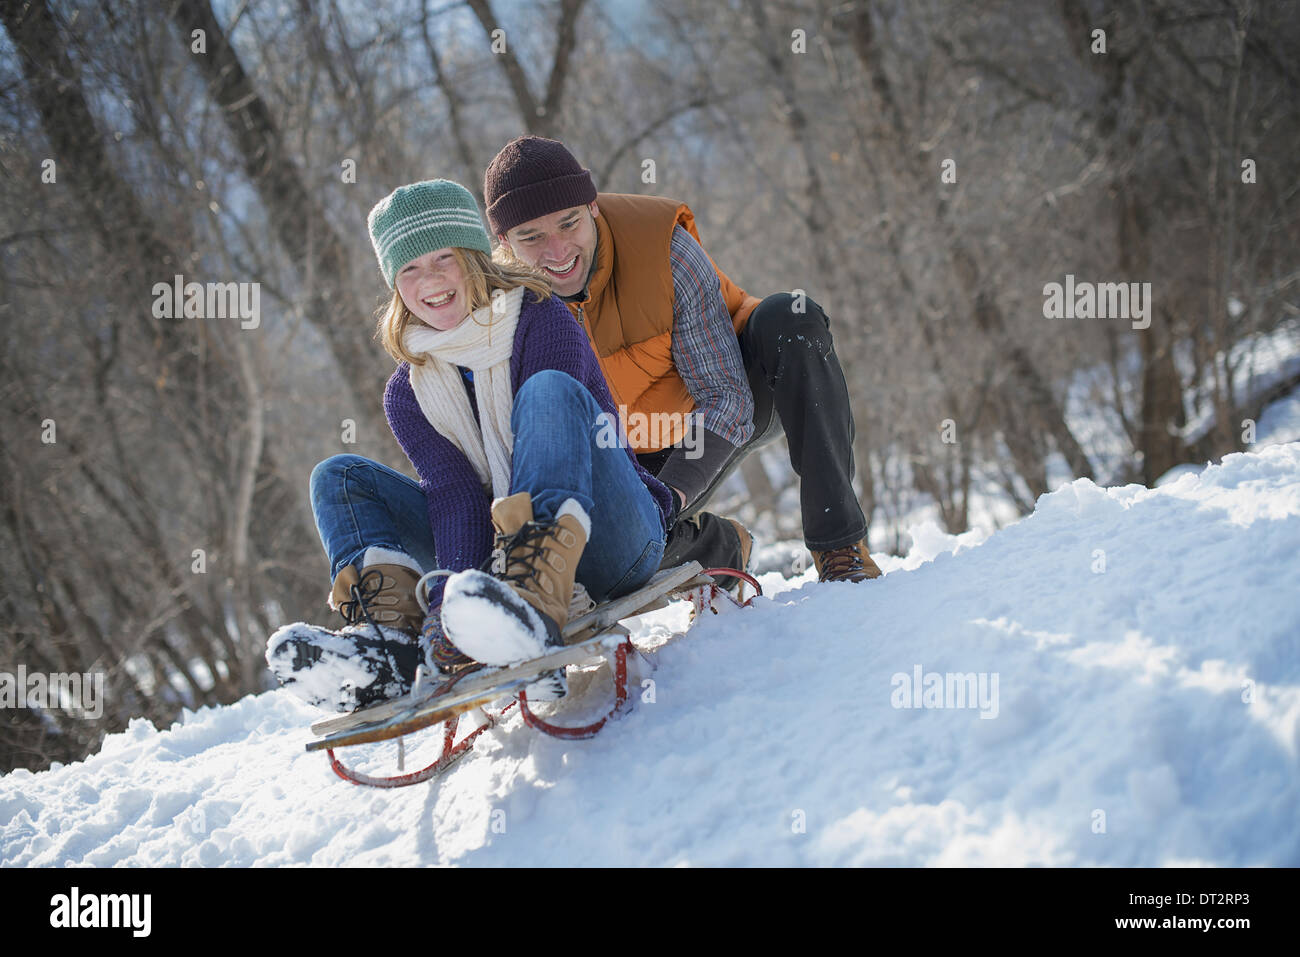 Winter scenery with snow on the ground A man pushing a young woman from the top of a slope on a toboggan - Stock Image